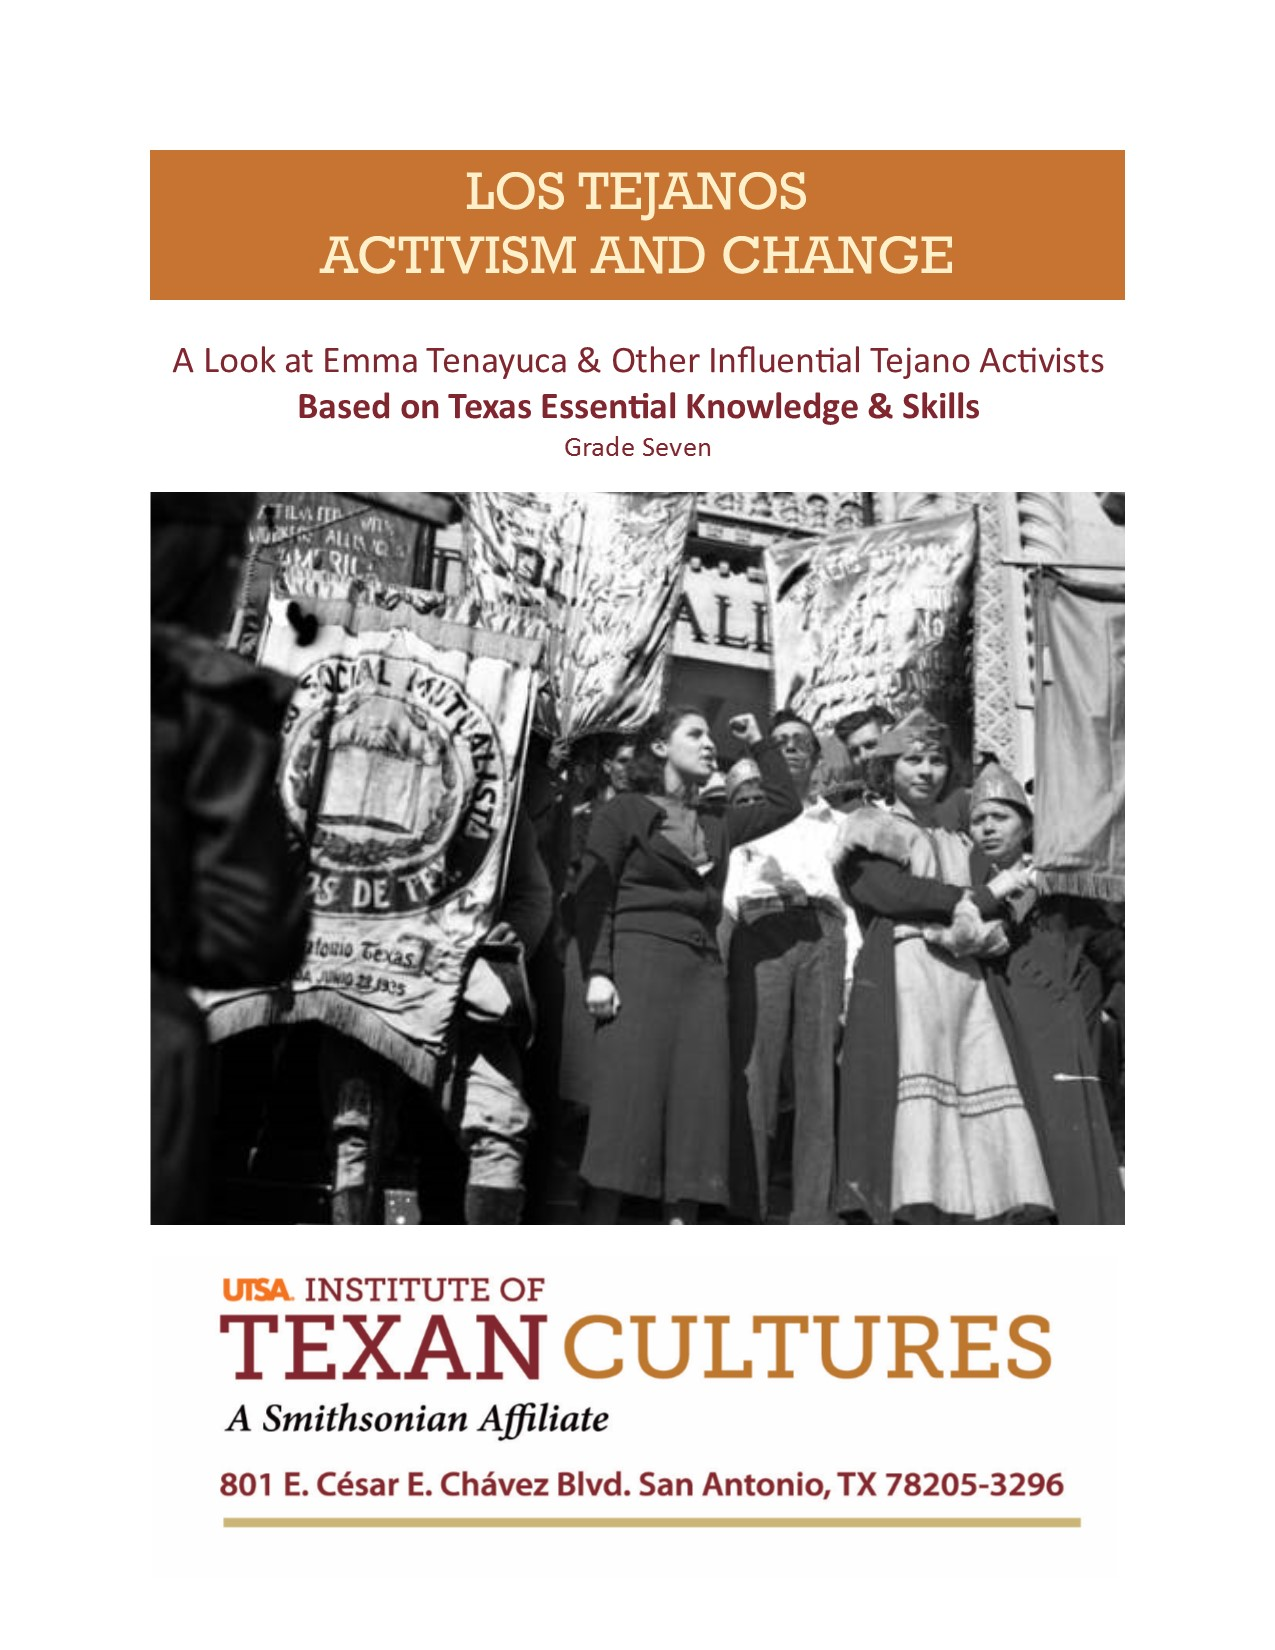 A Look at Emma Tenayuca and Other Influential Tejano Activists | UTSA Institute Of Texan Cultures